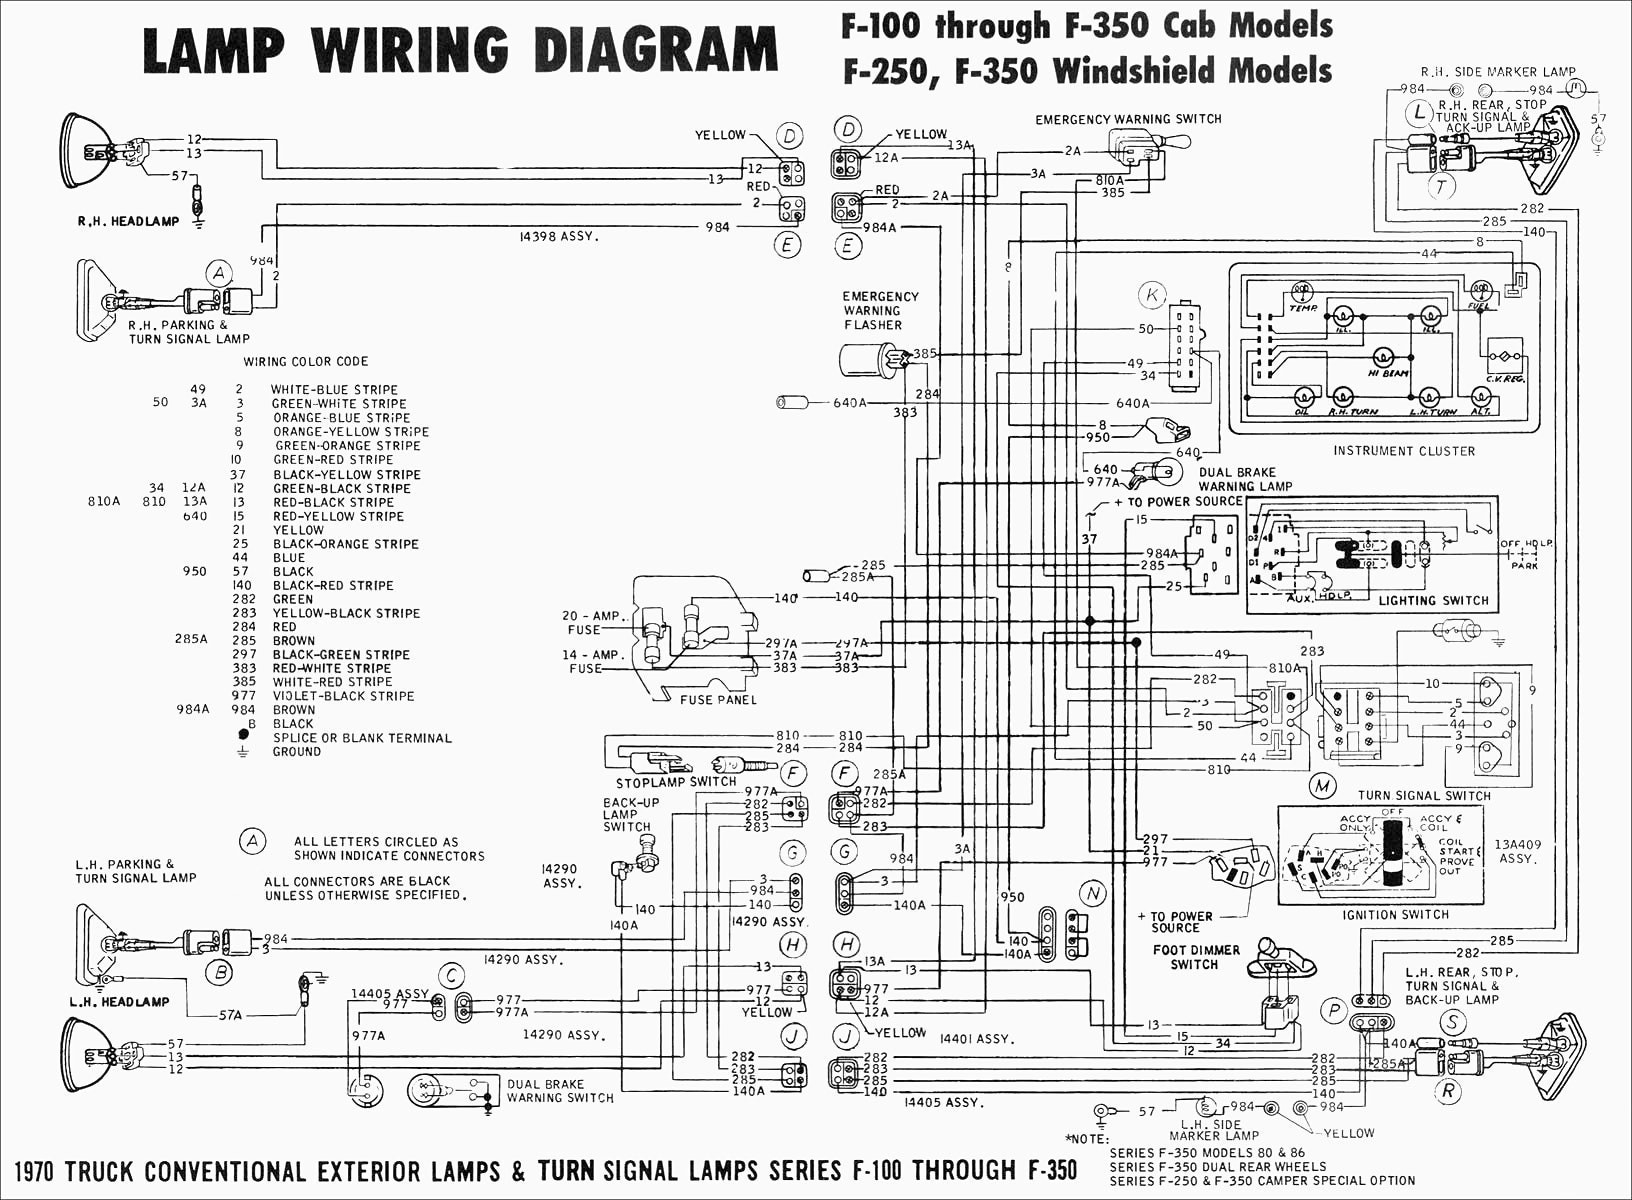 2000 Jeep Grand Cherokee Laredo Engine Diagram Jeep Grand Cherokee Wiring Diagram 2000 Chevy Silverado Wiring Of 2000 Jeep Grand Cherokee Laredo Engine Diagram